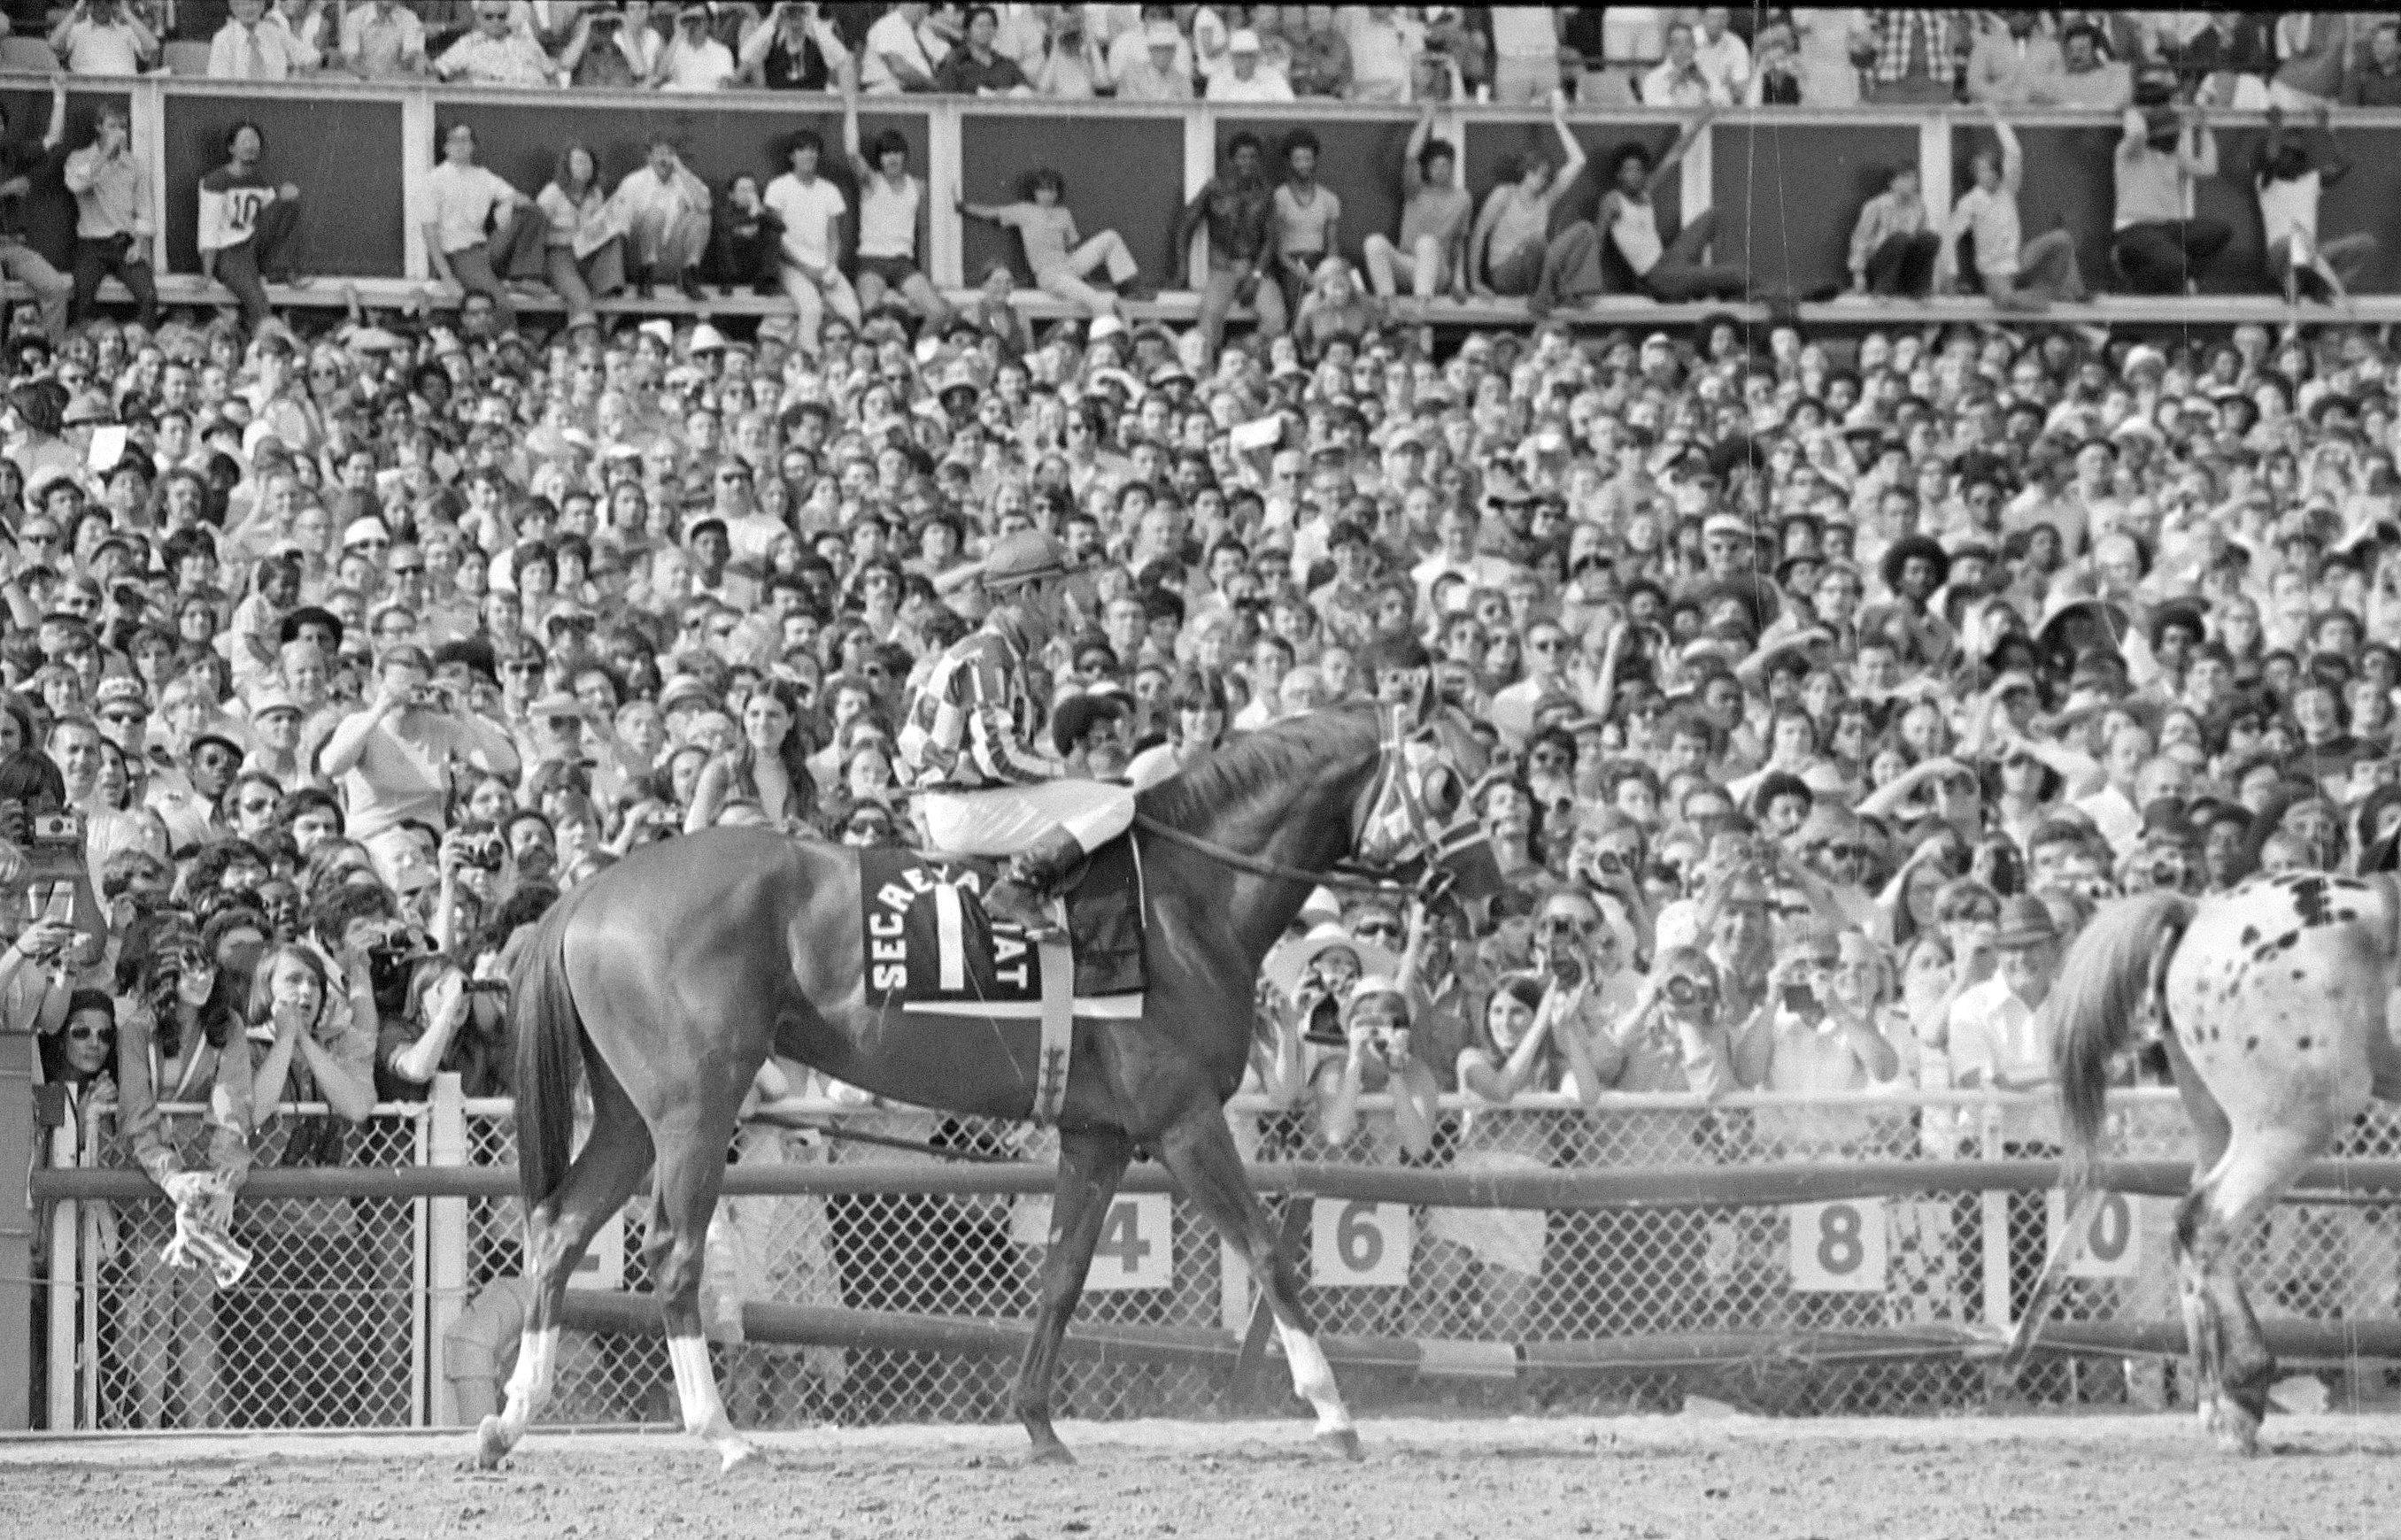 The grandstand was packed on June 30, 1973, when Secretariat ran away in a four-hour invitational race at Arlington Park. The heavy favorite paid $2.10 on a $2.00 bet.